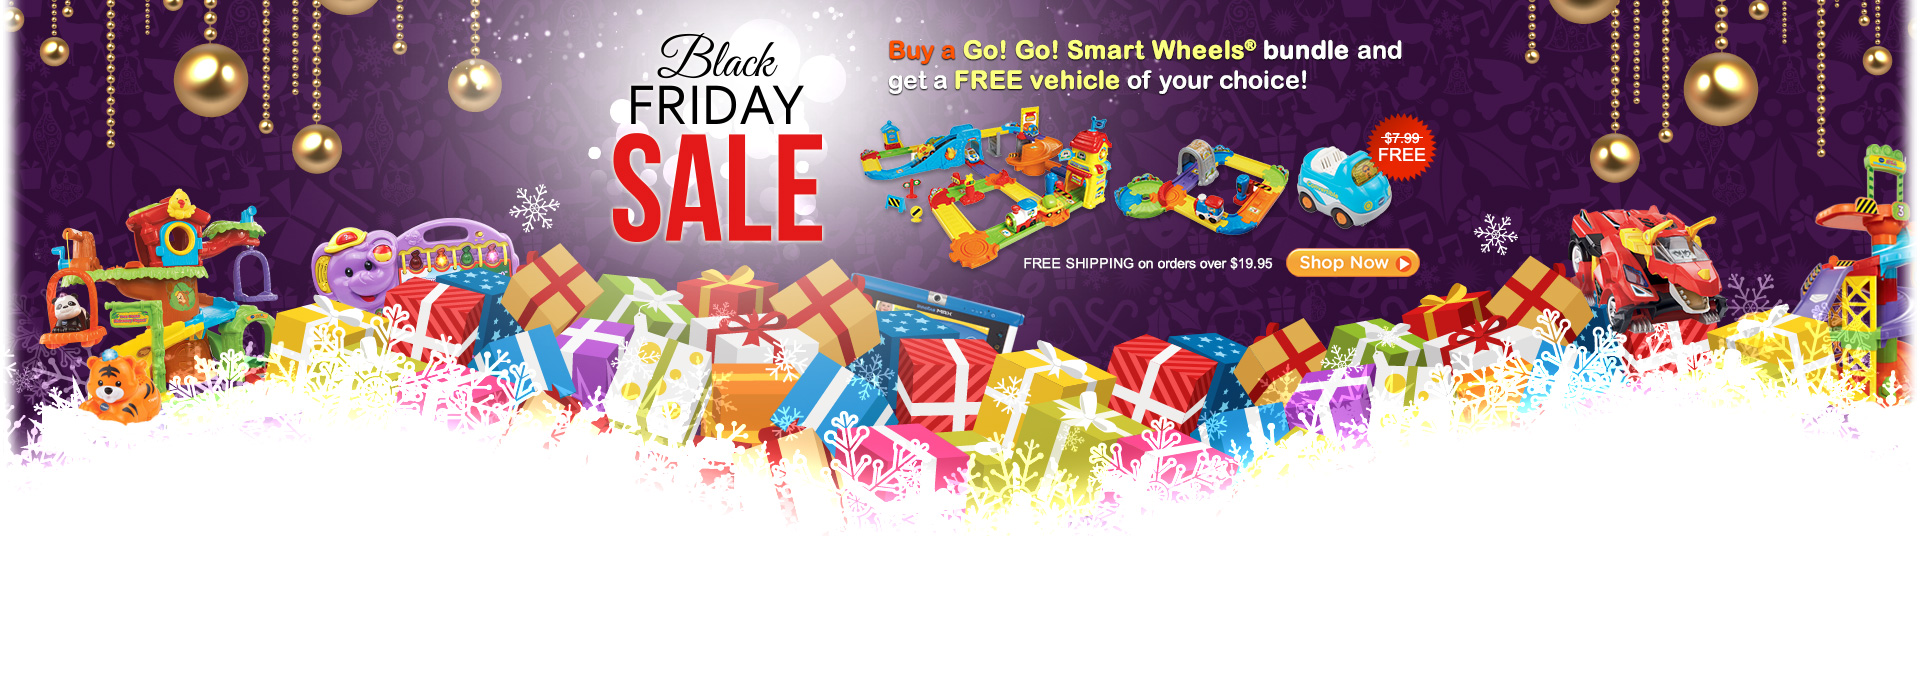 Black Friday Sale - Buy a Go! Go! Smart Wheels bundle and get a FREE vehicle of your choice